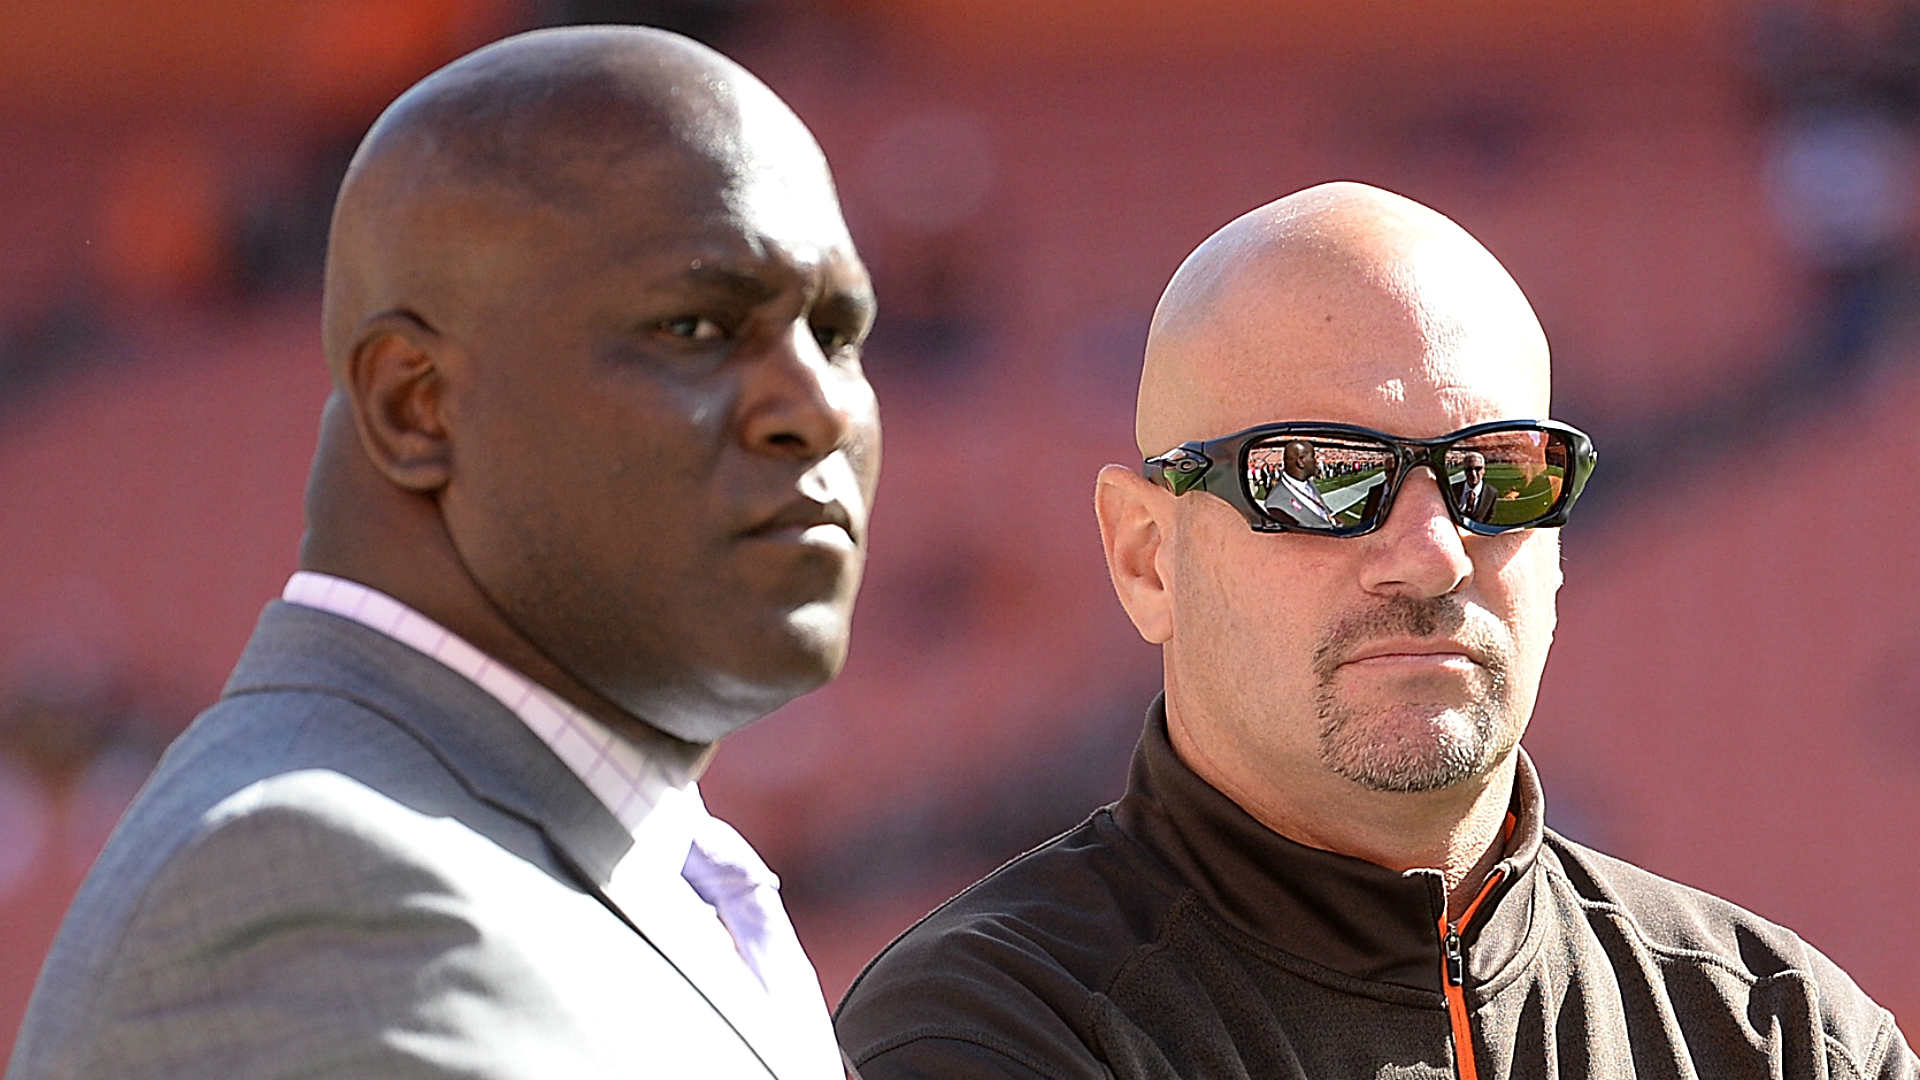 Farmer-Pettine-010315-USNews-Getty-FTR